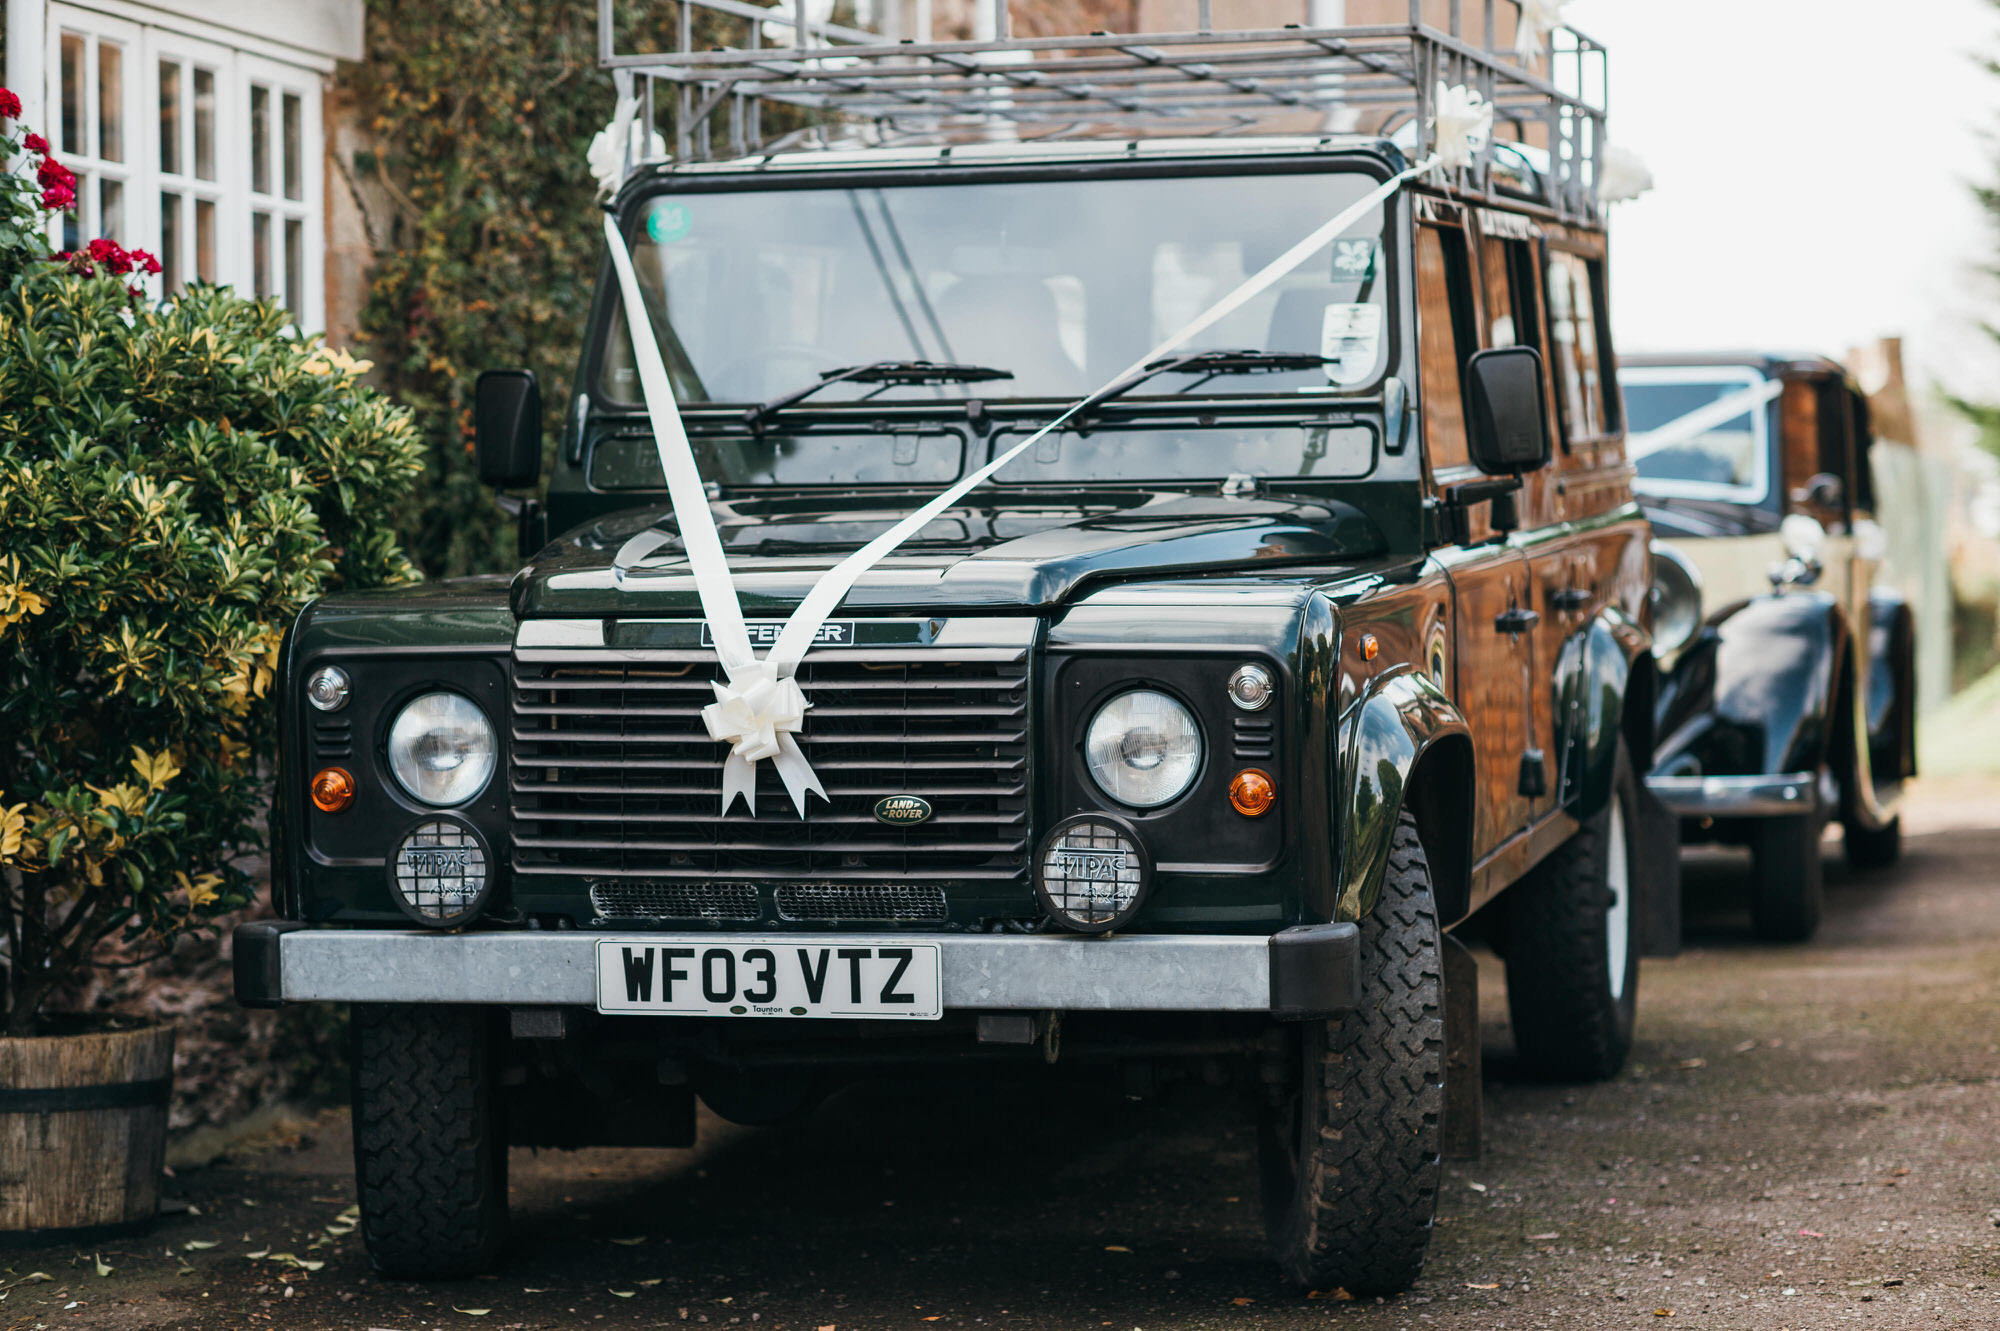 Landrover wedding car